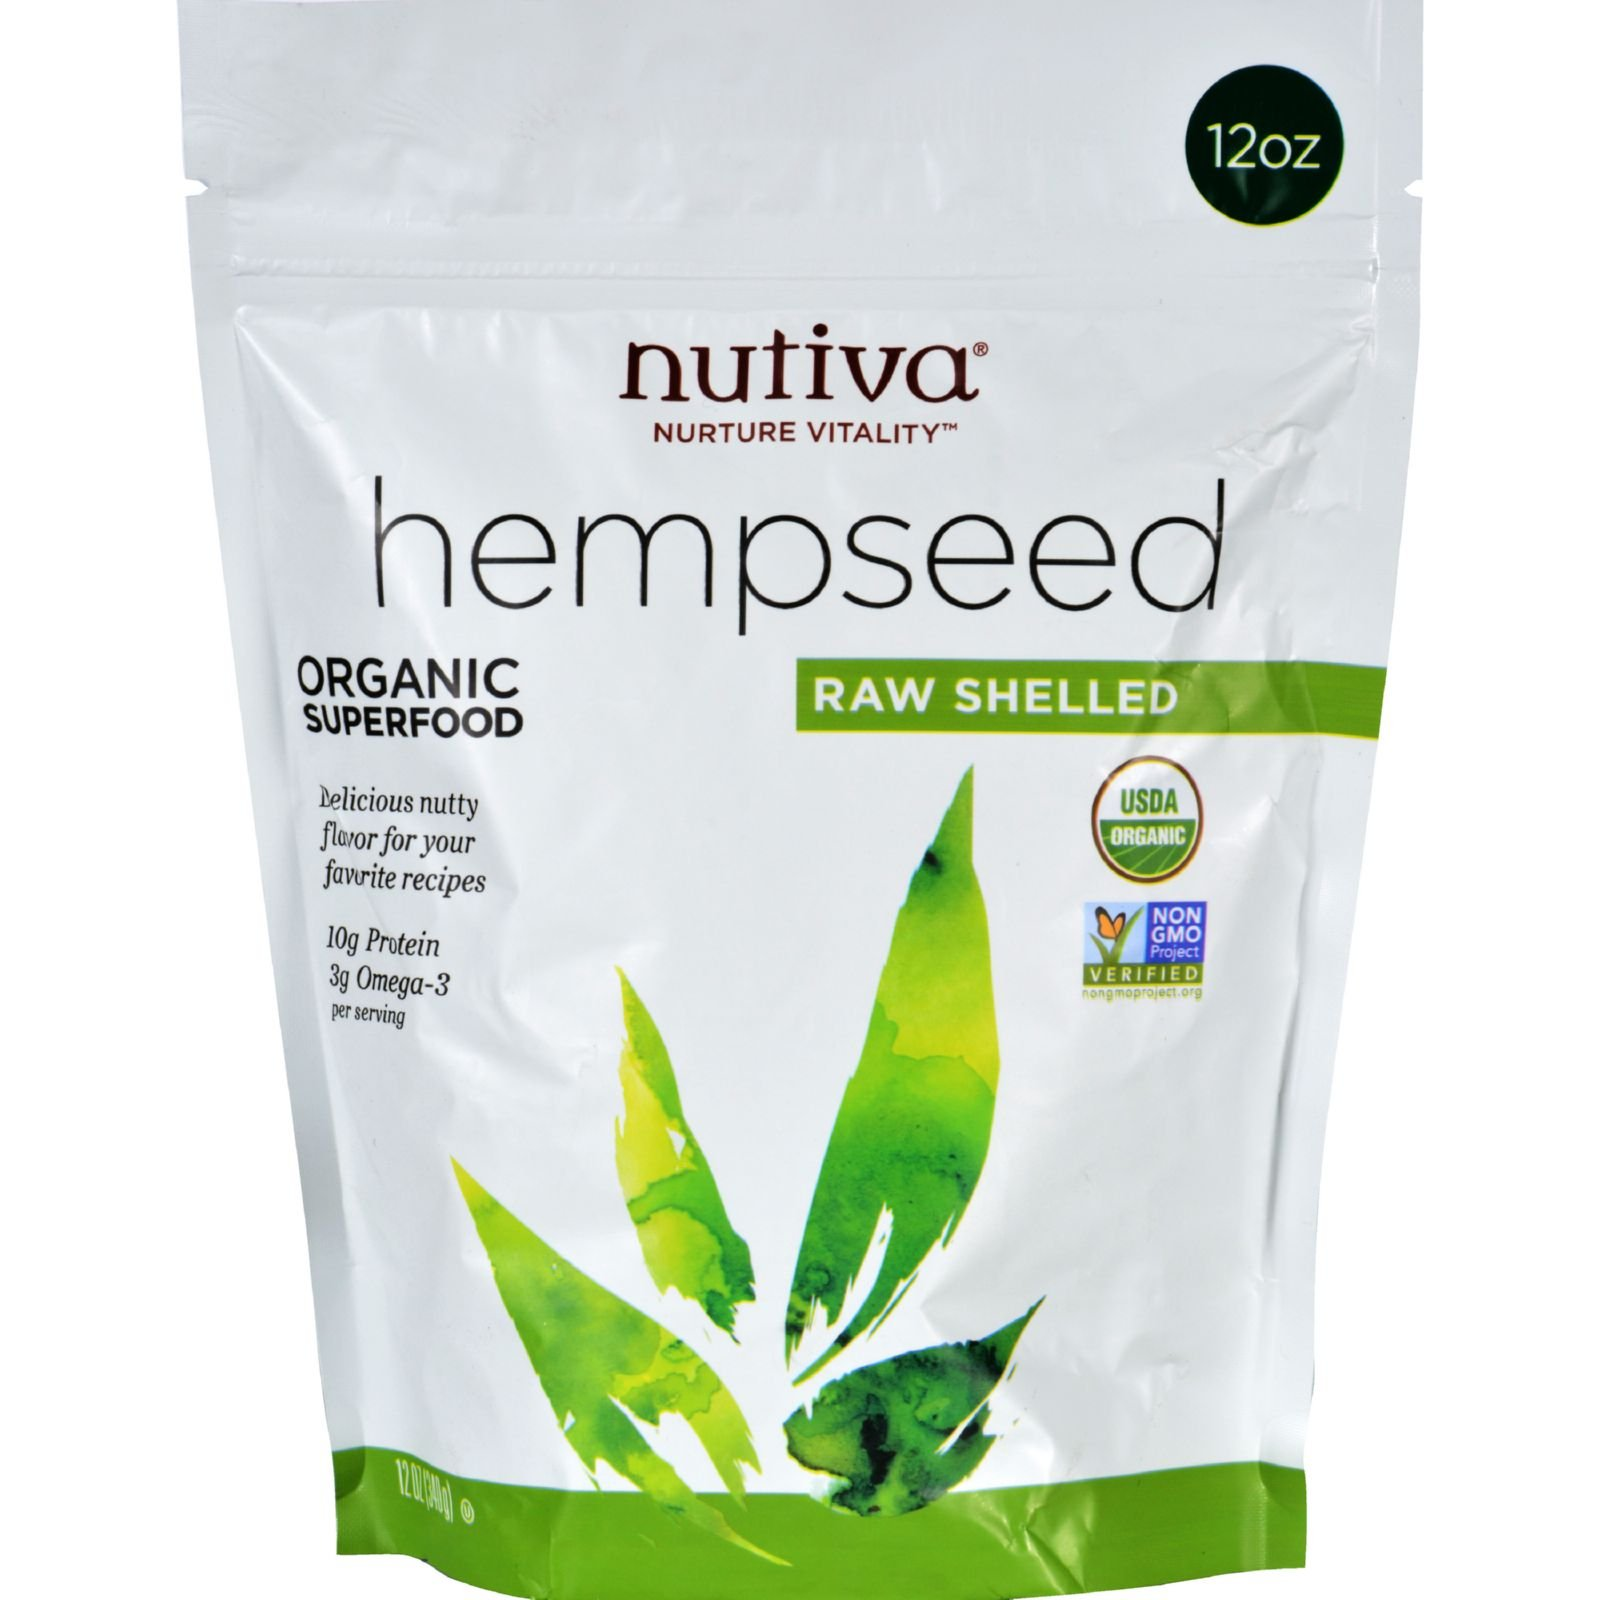 Nutiva Hempseed - Organic Superfood - Raw Shelled - 12 oz - With Protein and Omega 3 - Non GMO